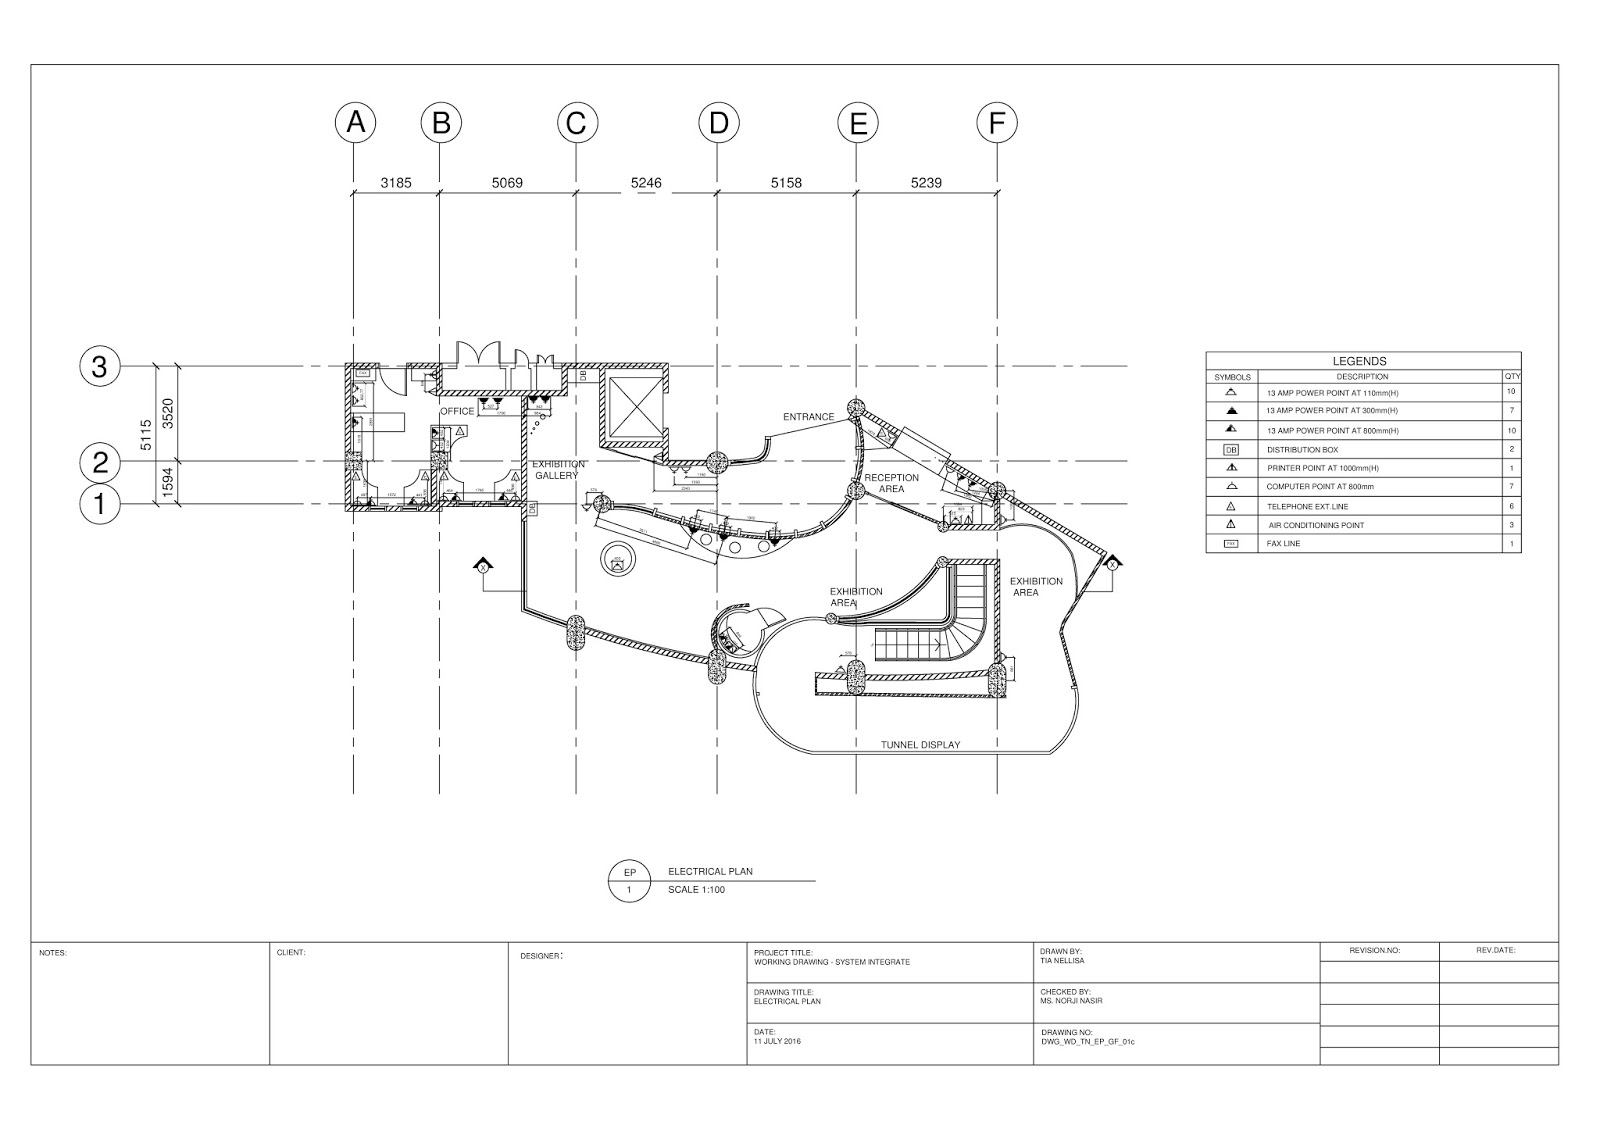 Bachelor Of Interior Architecture Project 3 Working Drawing And System Integration